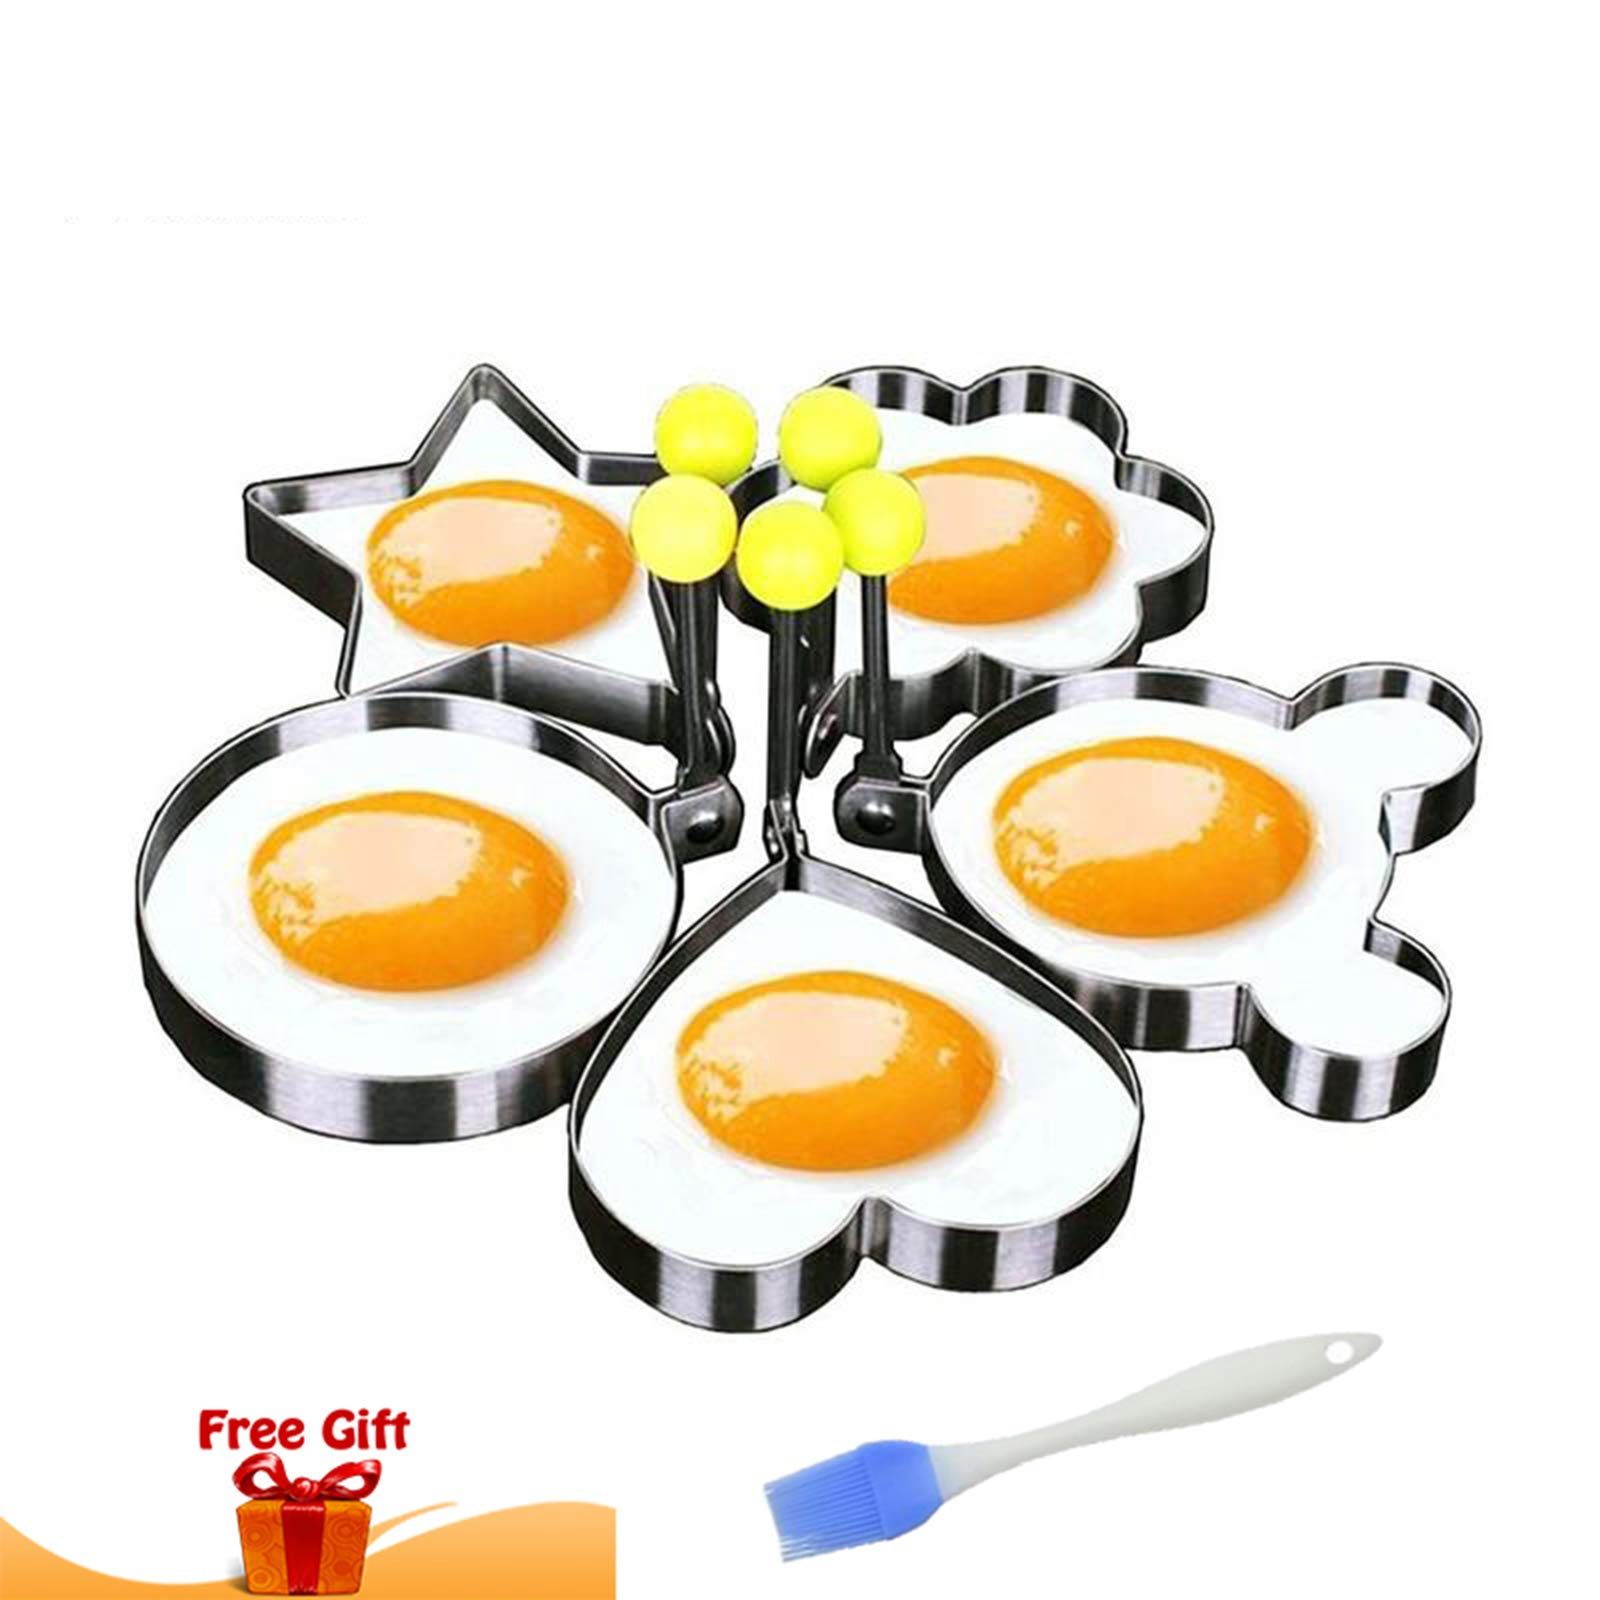 Fried Egg Ring Mold Pancake Cooker - Breakfast Sandwich Perfect for frying fun egg shaper Non stick Stainless Steel 5PCS set within a FREE GIFT Silicone Pastry Brush